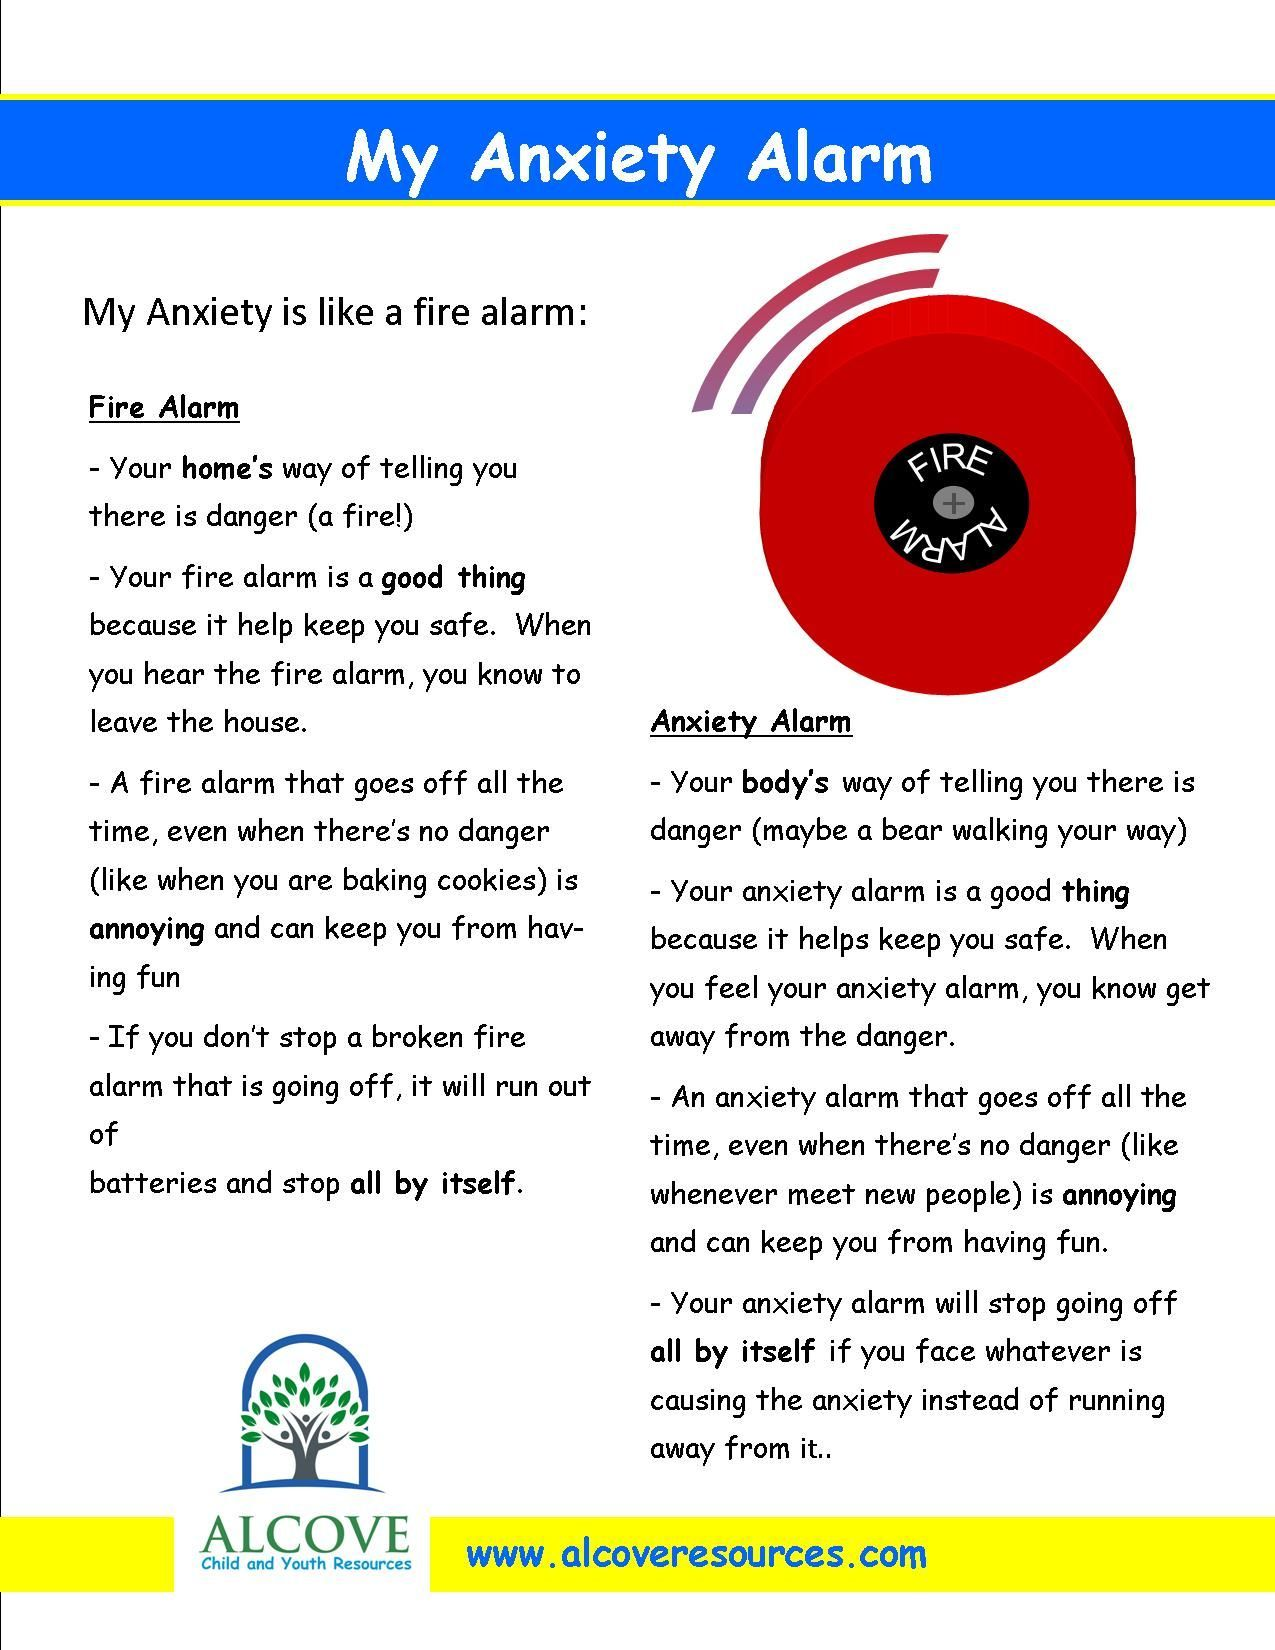 Worksheets Anxiety Worksheets For Kids my anxiety alarm worksheet for kids alcove child and youth resources